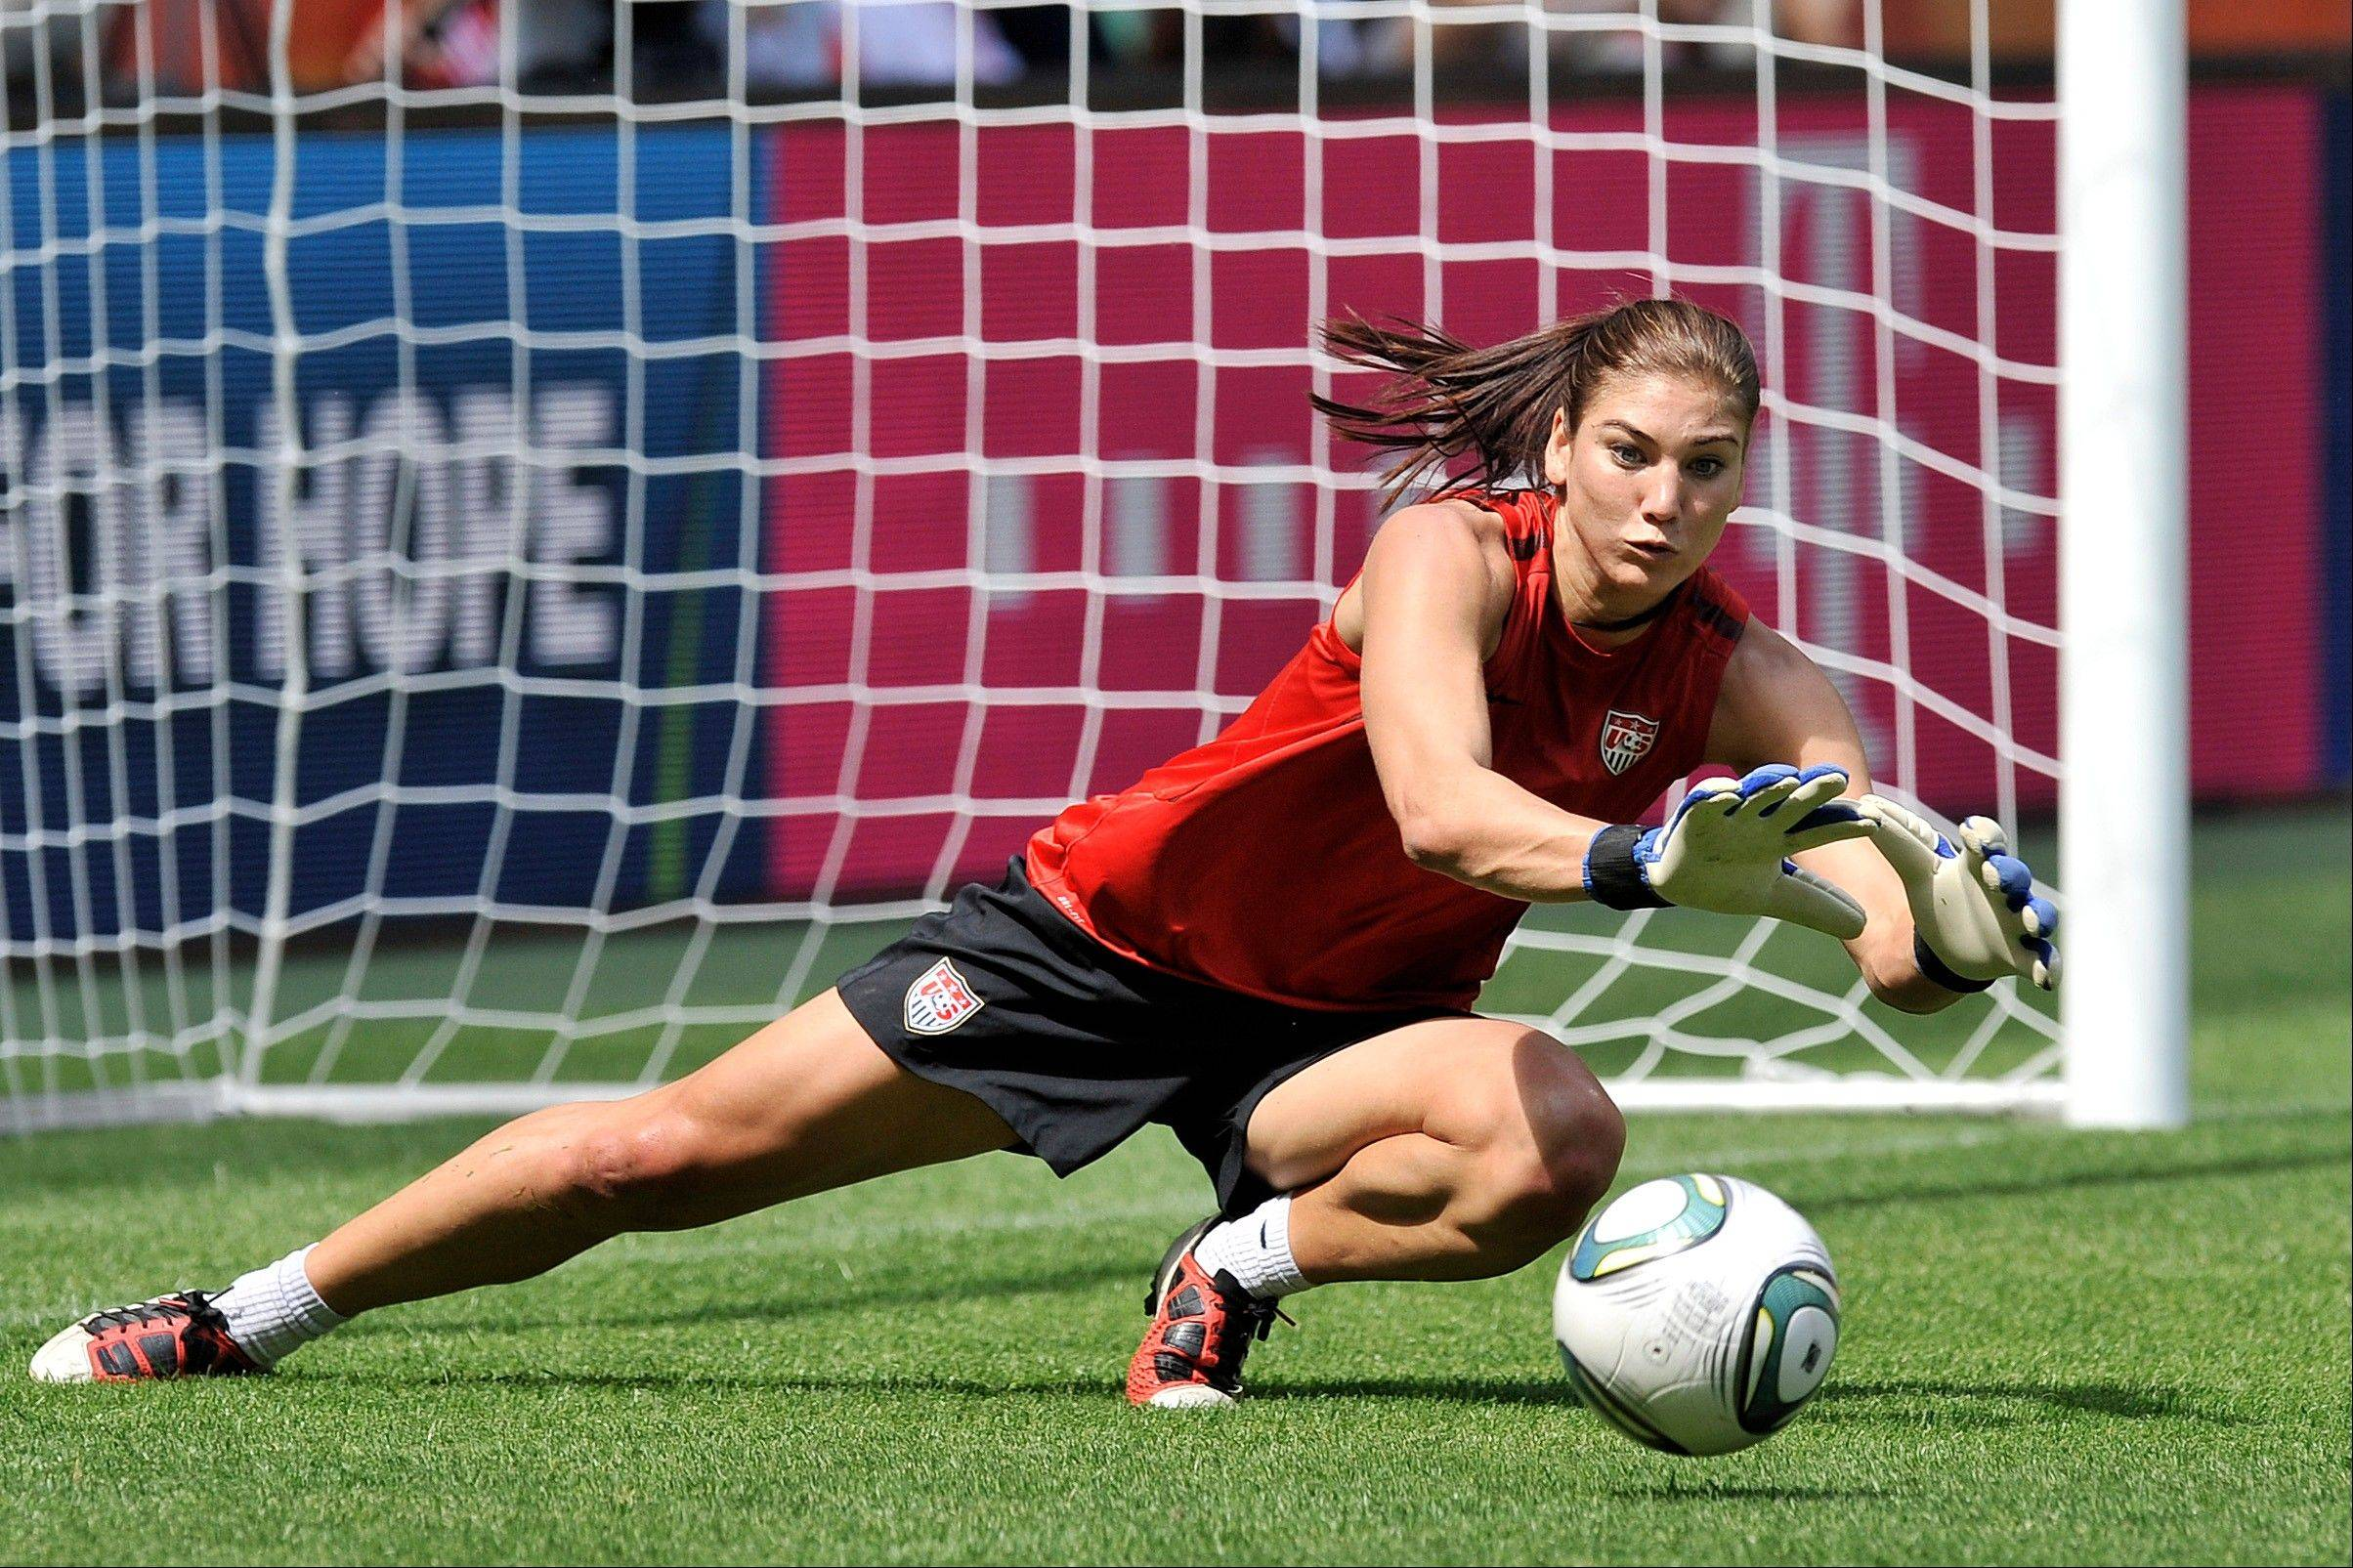 U.S. goalkeeper Hope Solo stops a shot during Tuesday's practice for today's match against France.